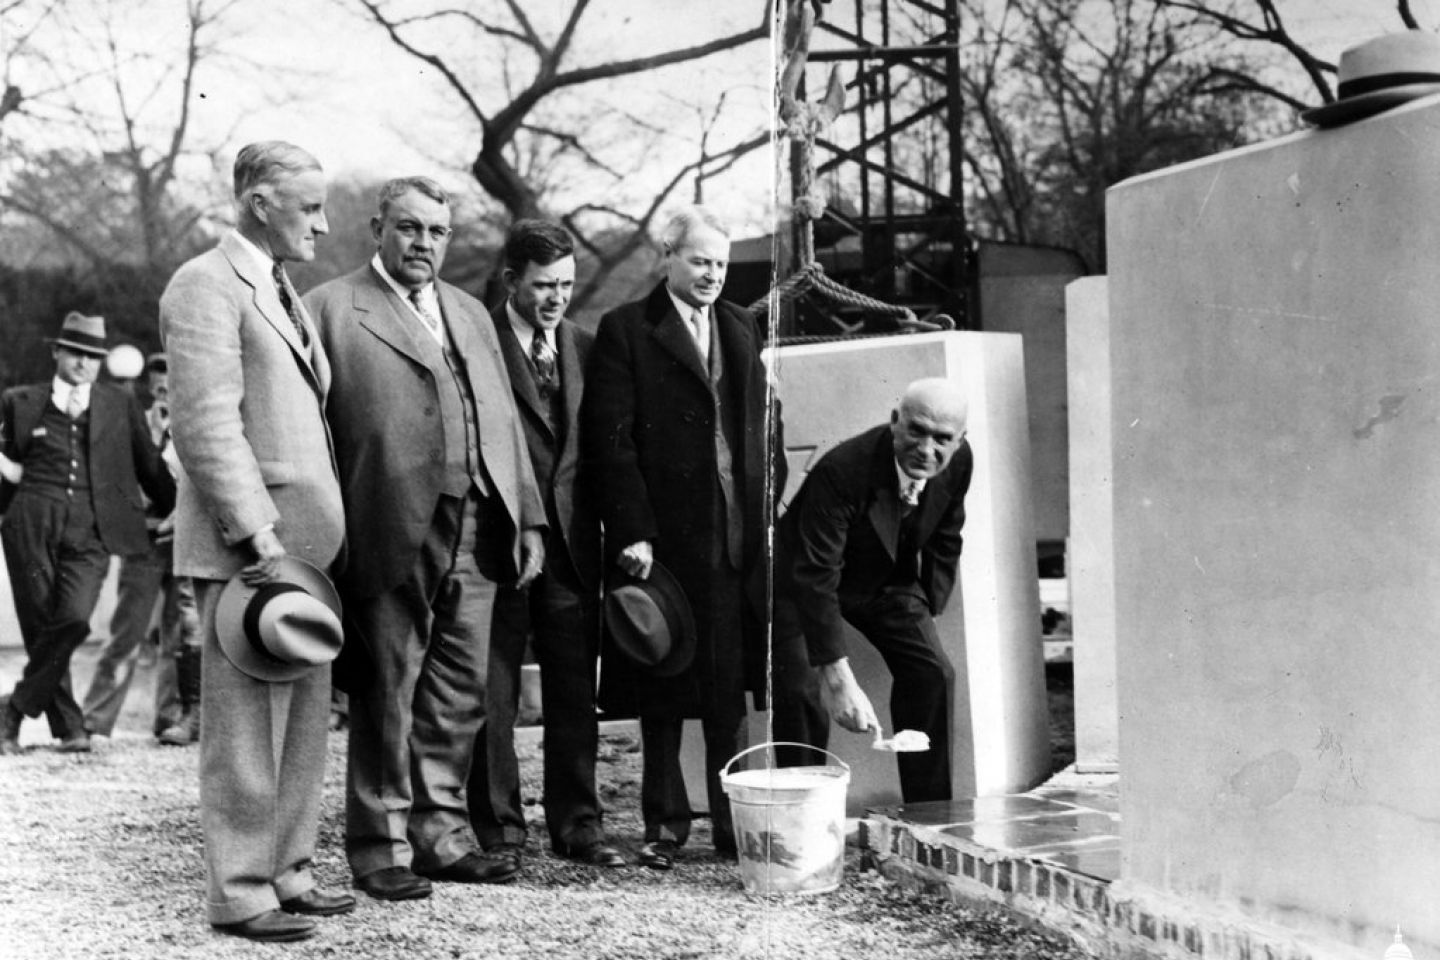 Laying of the USBG Conservatory cornerstone, November 12, 1931.